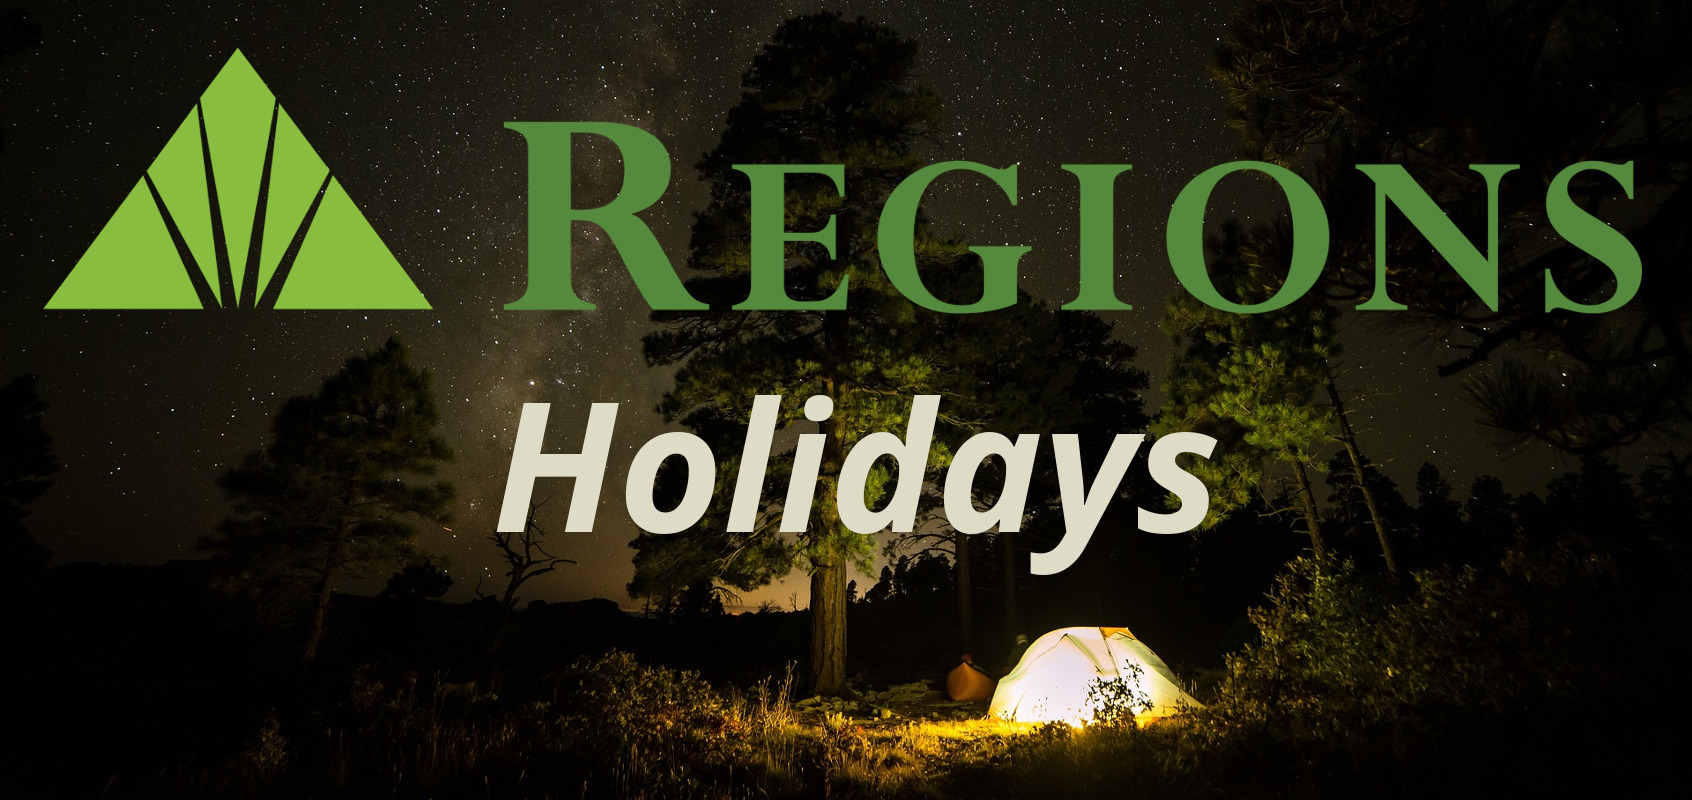 regions bank holidays for 2018 and 2019 - Chase Bank Open Christmas Eve